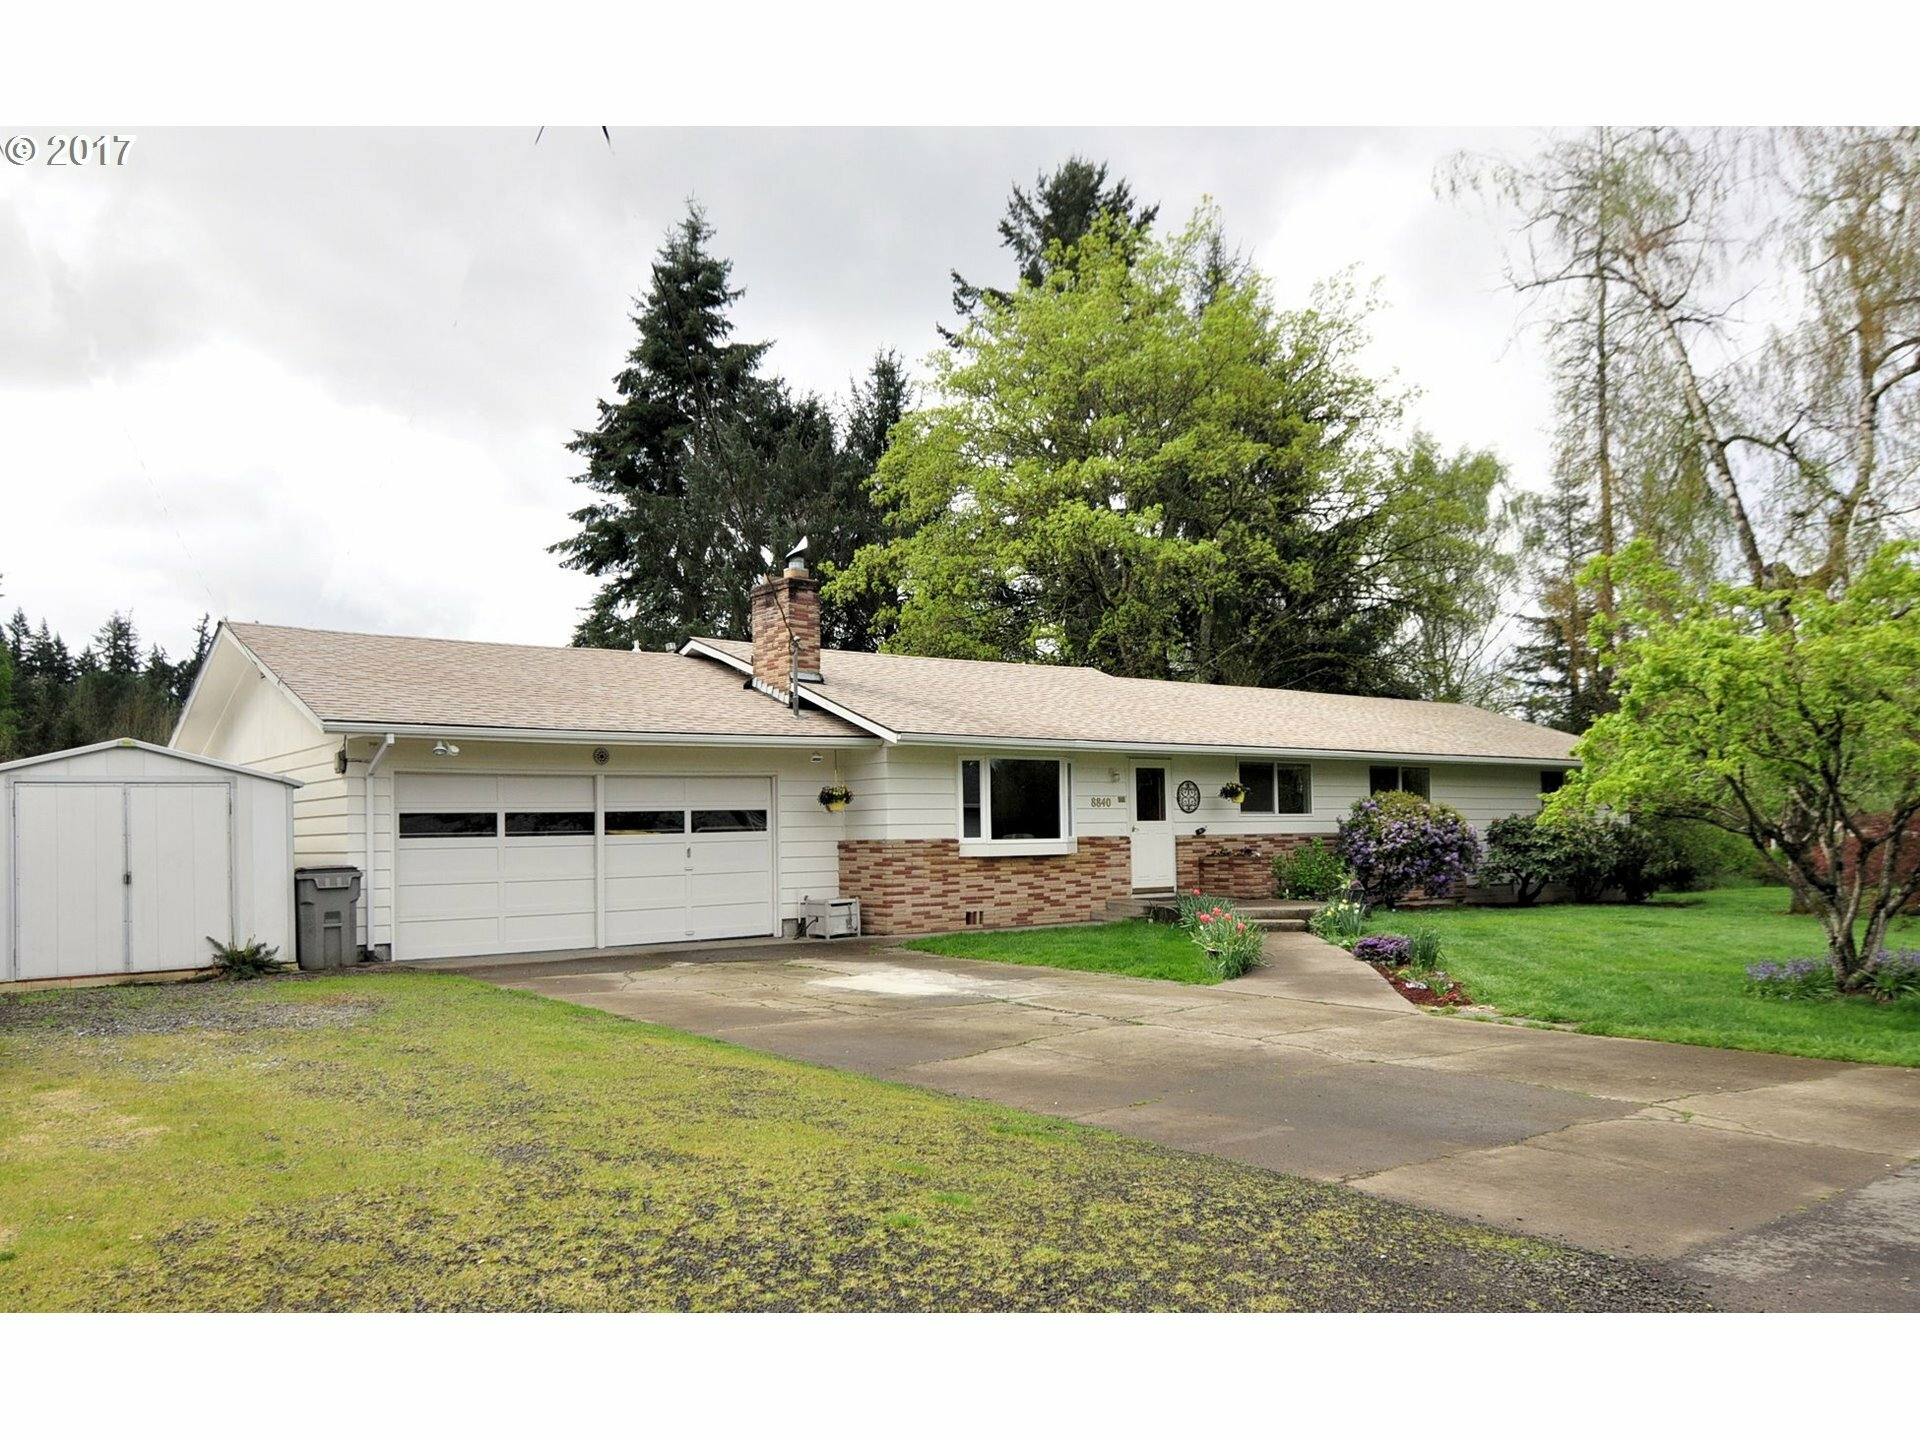 8840 Sw Spruce St, Tigard, OR - USA (photo 1)